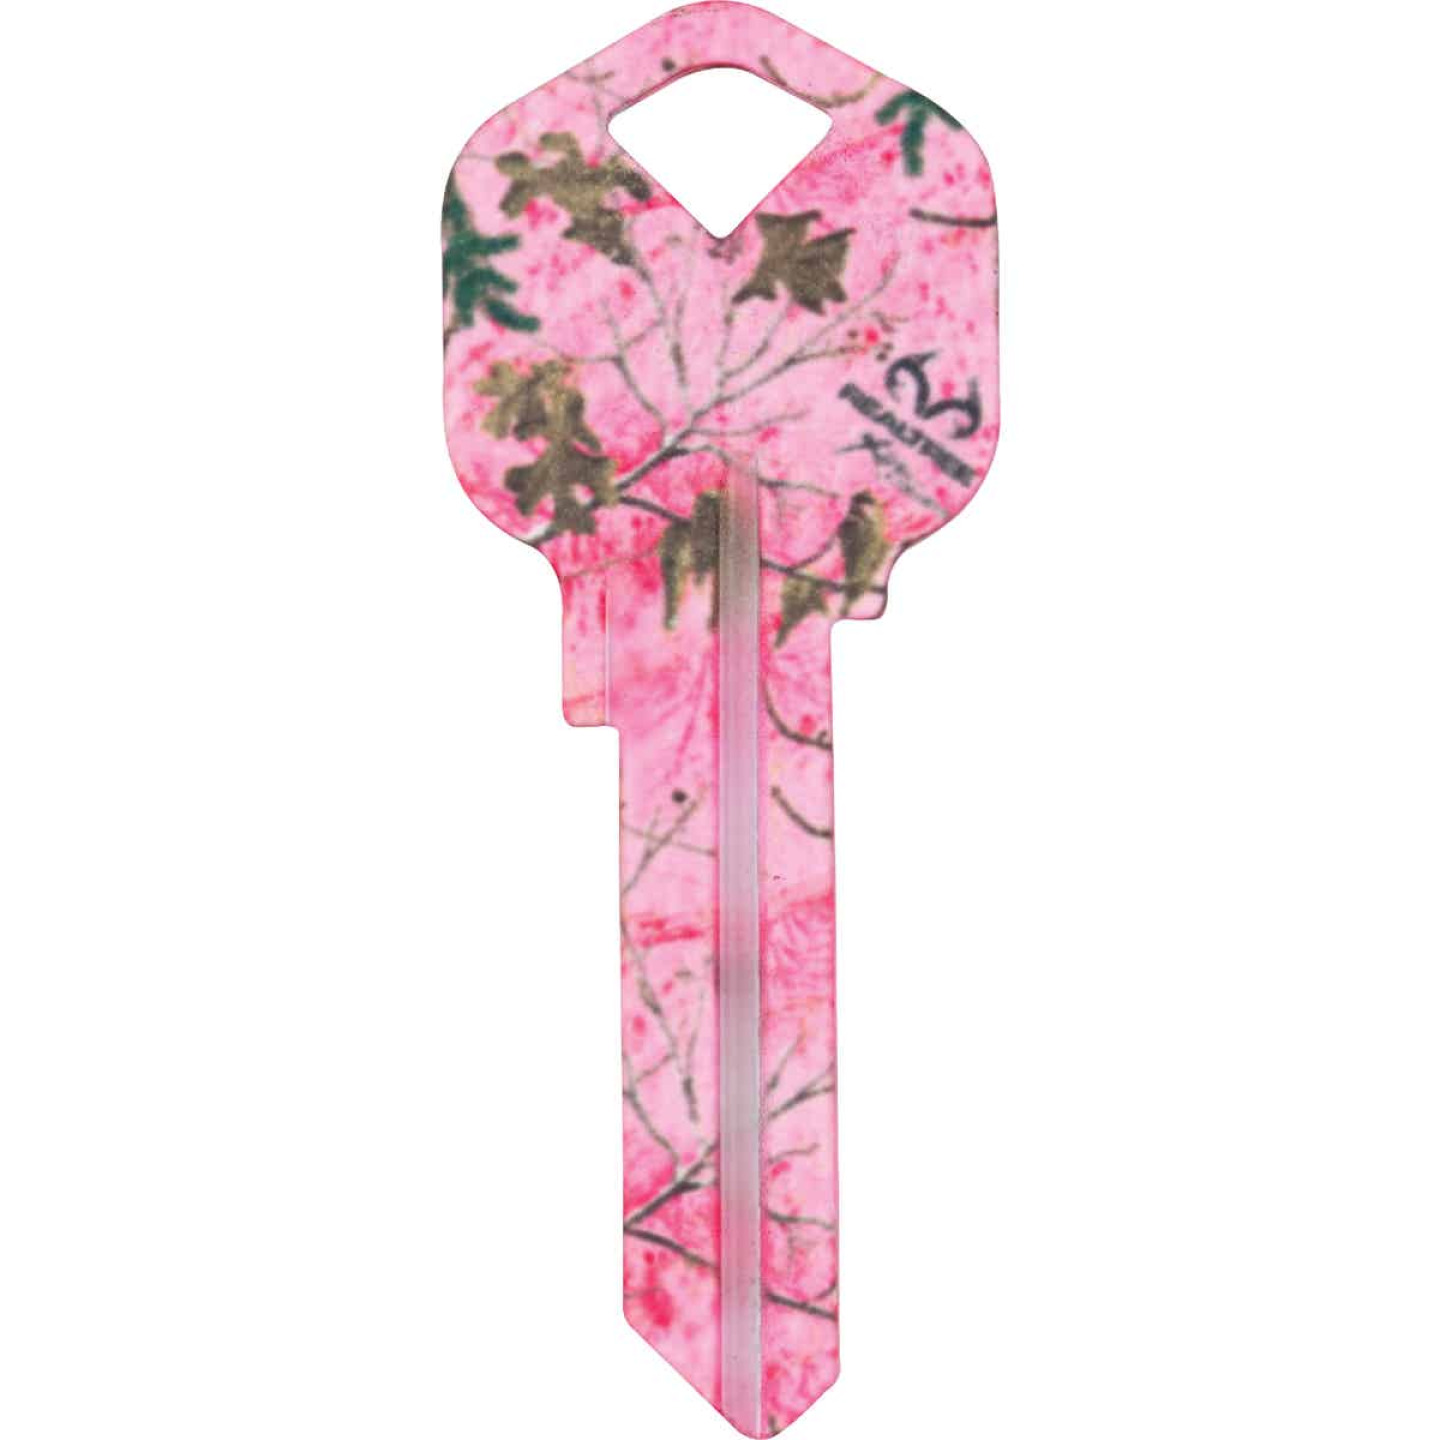 ILCO Kwikset Realtree Paradise Pink Camo Design Decorative Key, KW1  Image 1